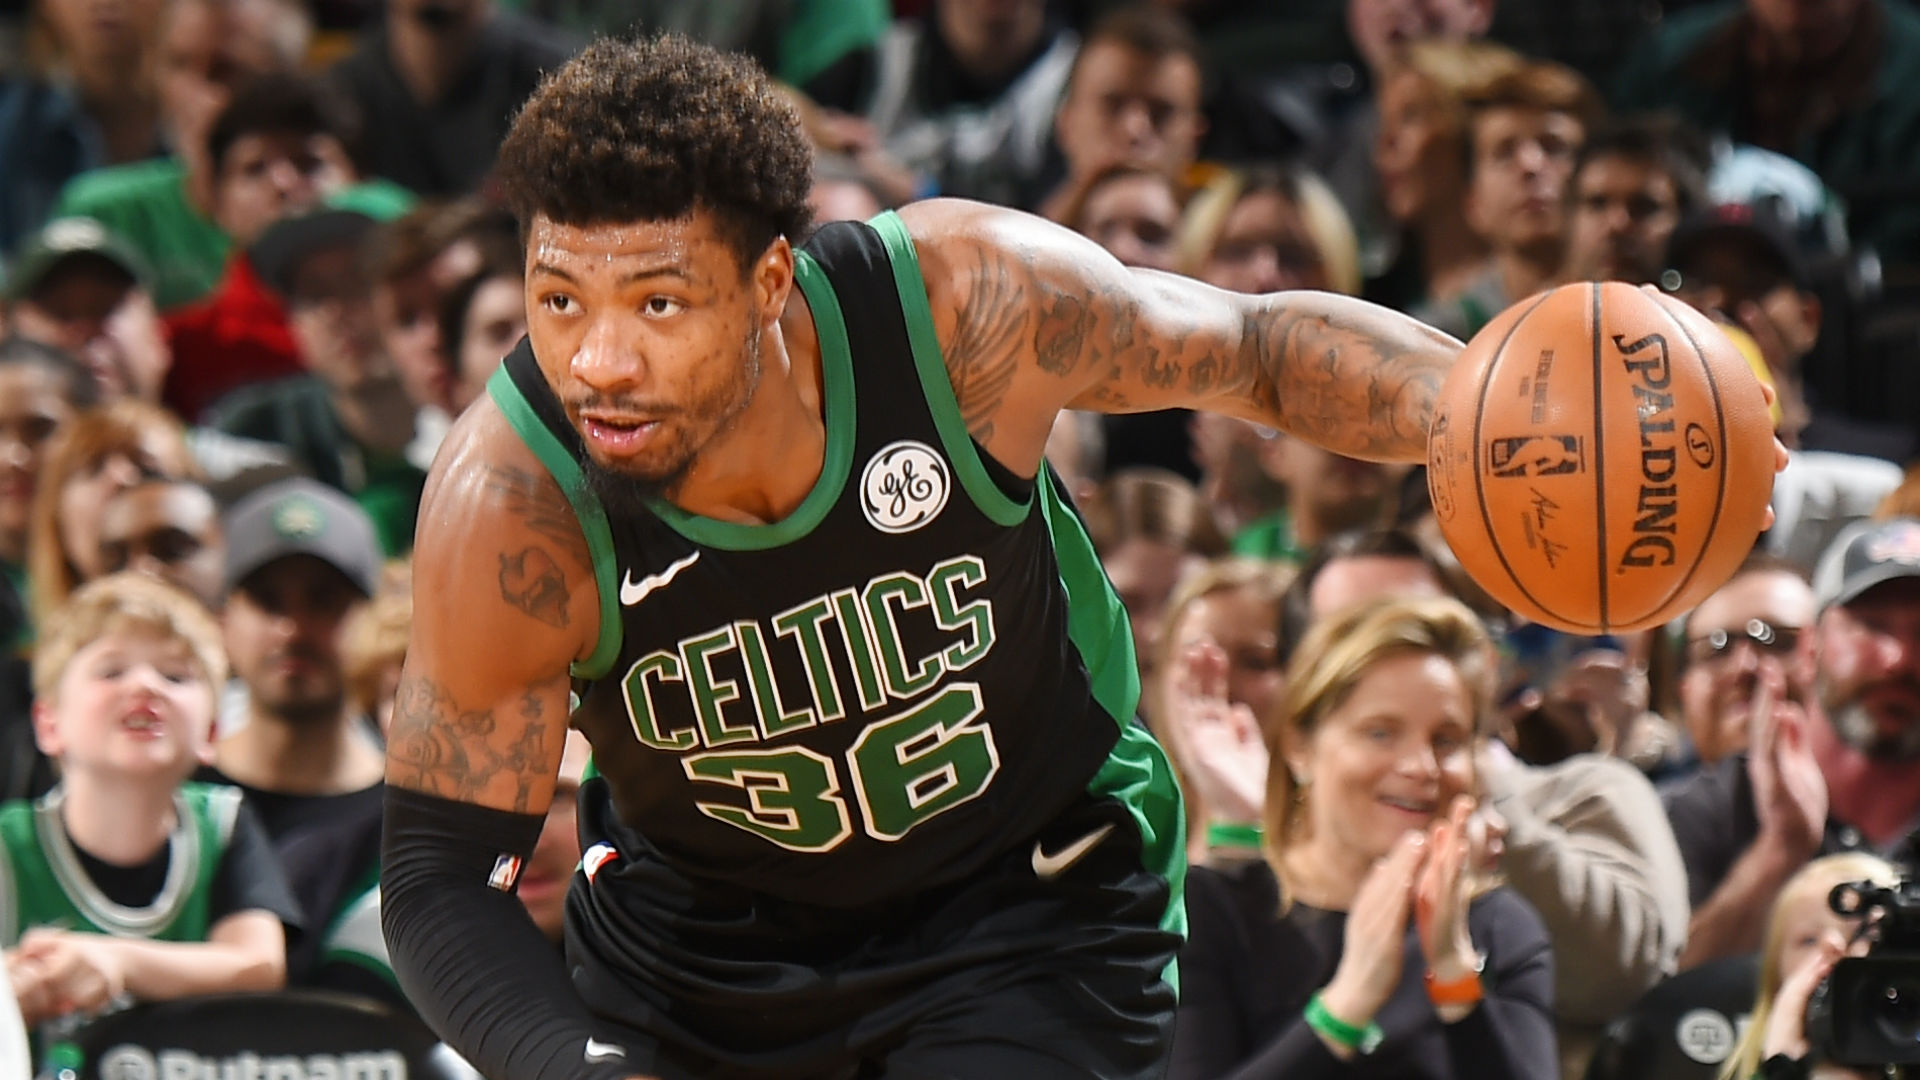 Nba Playoffs 2019 Marcus Smart Will Play In Game 4 Of